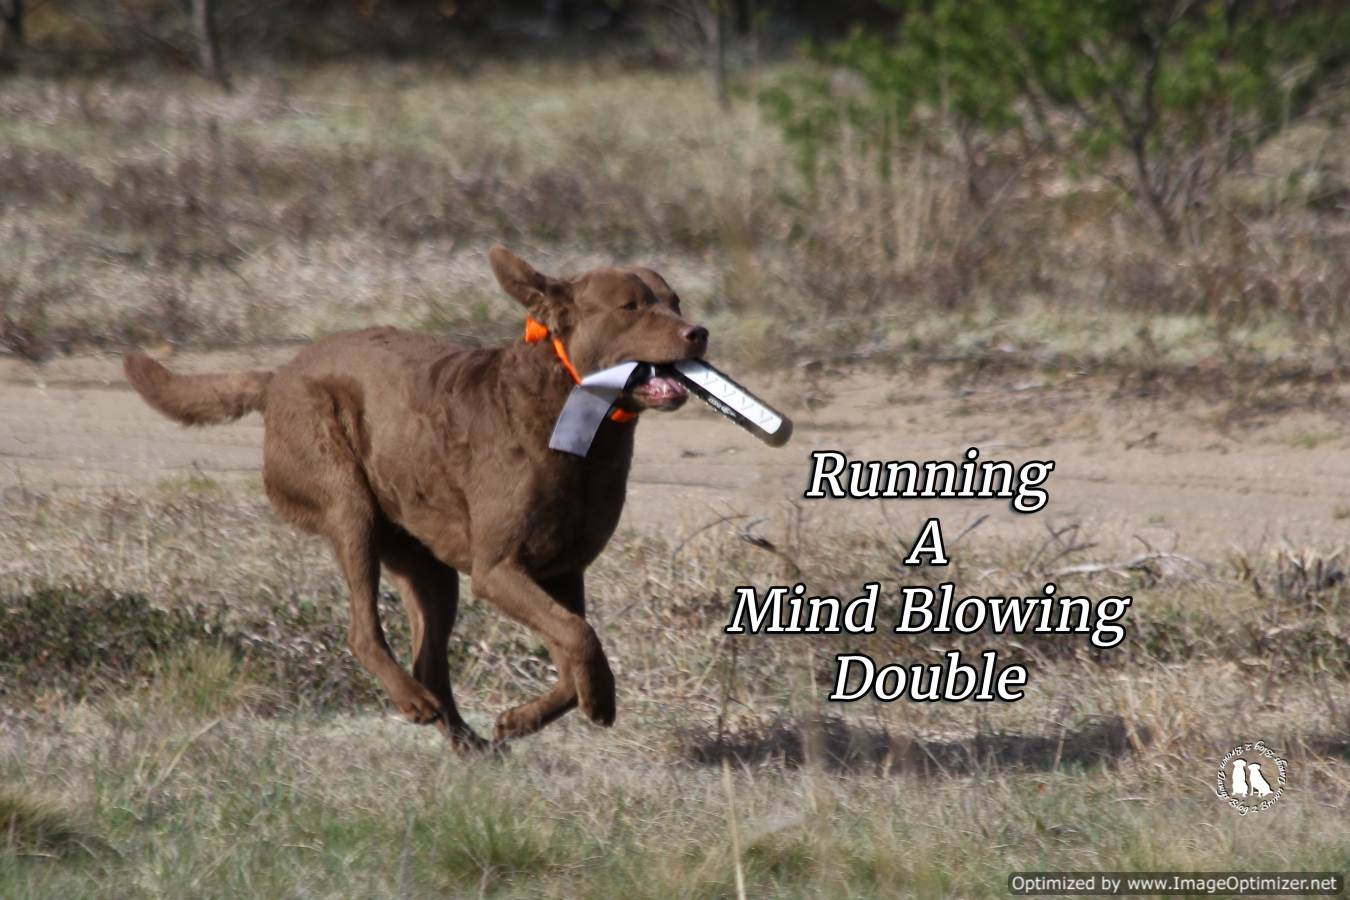 Running A Mind Blowing Double